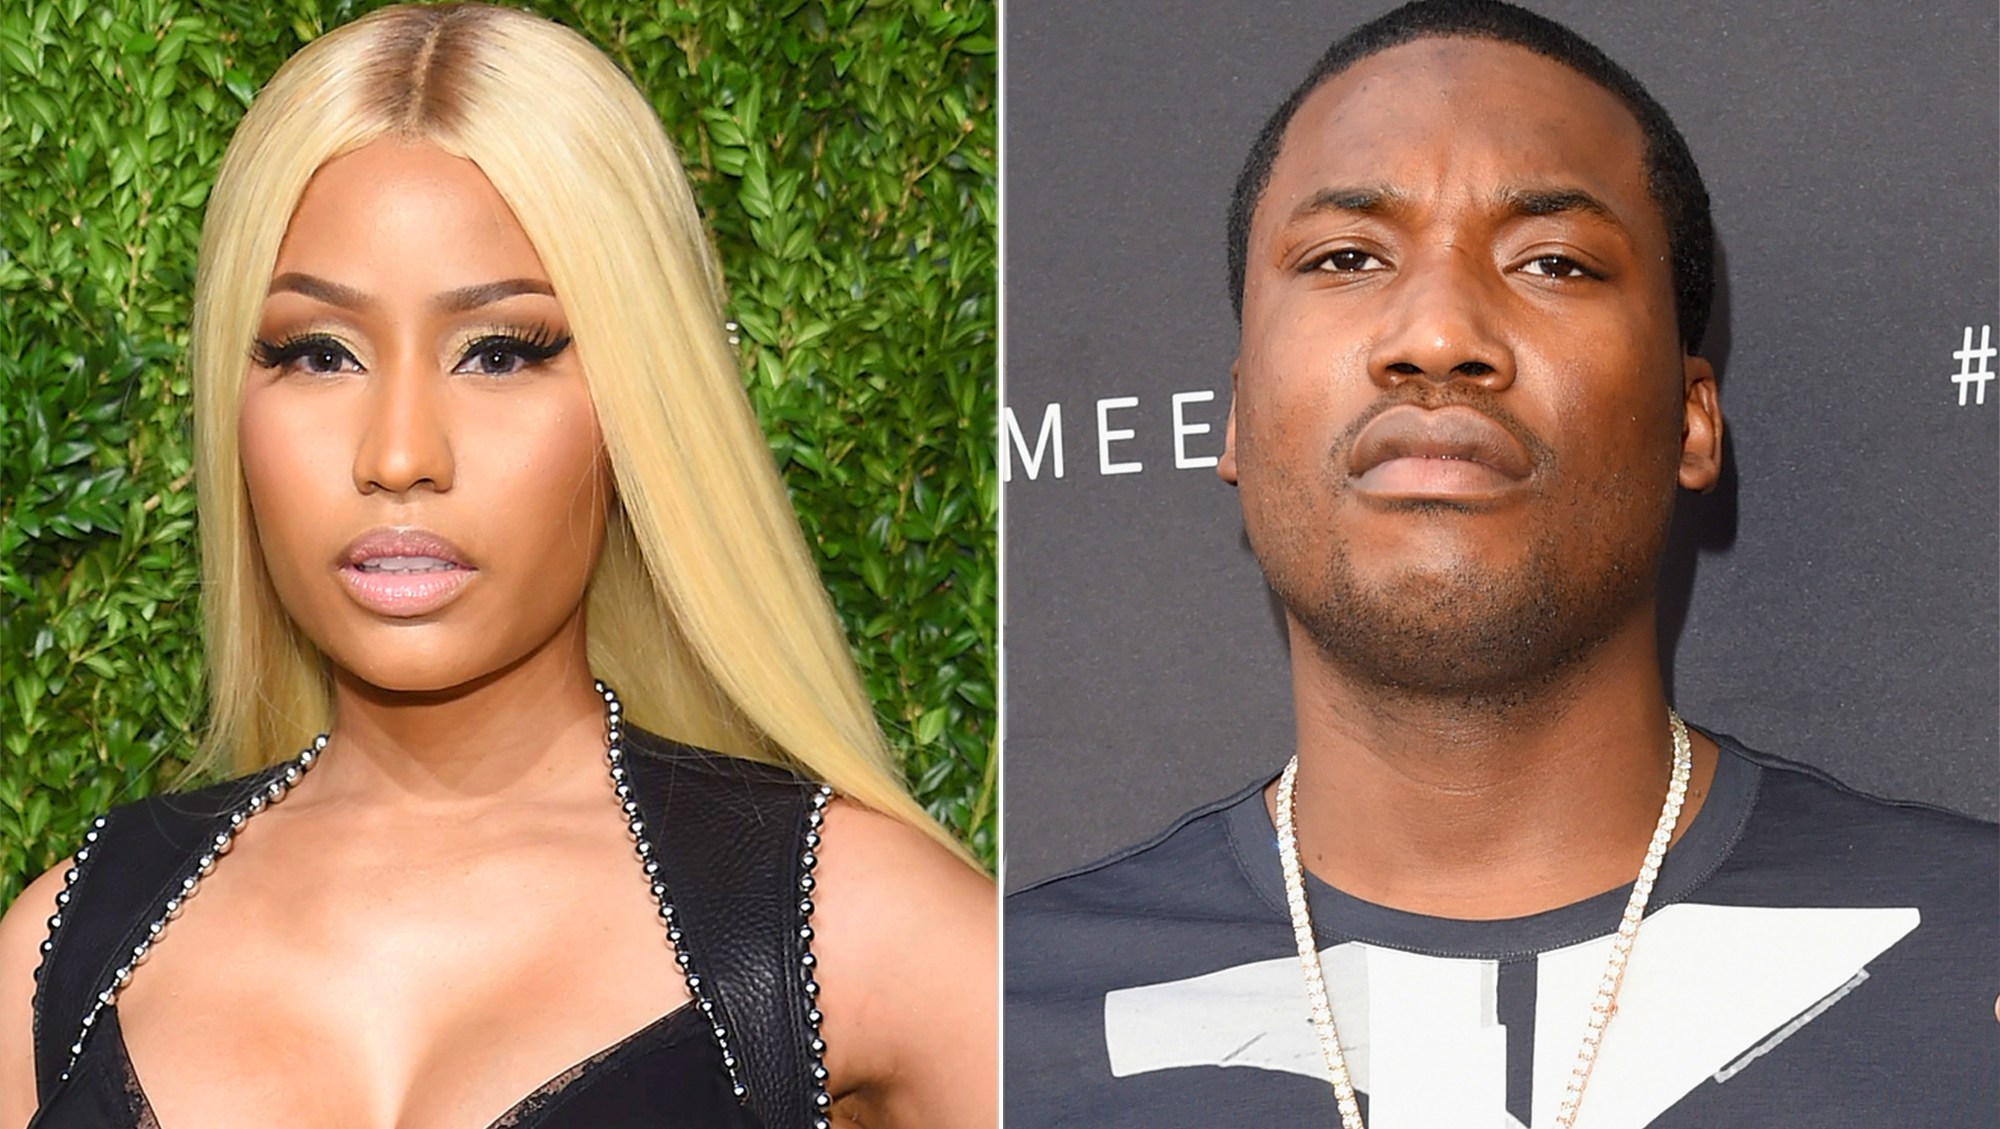 Nicki Minaj Takes Aim at Meek Mill